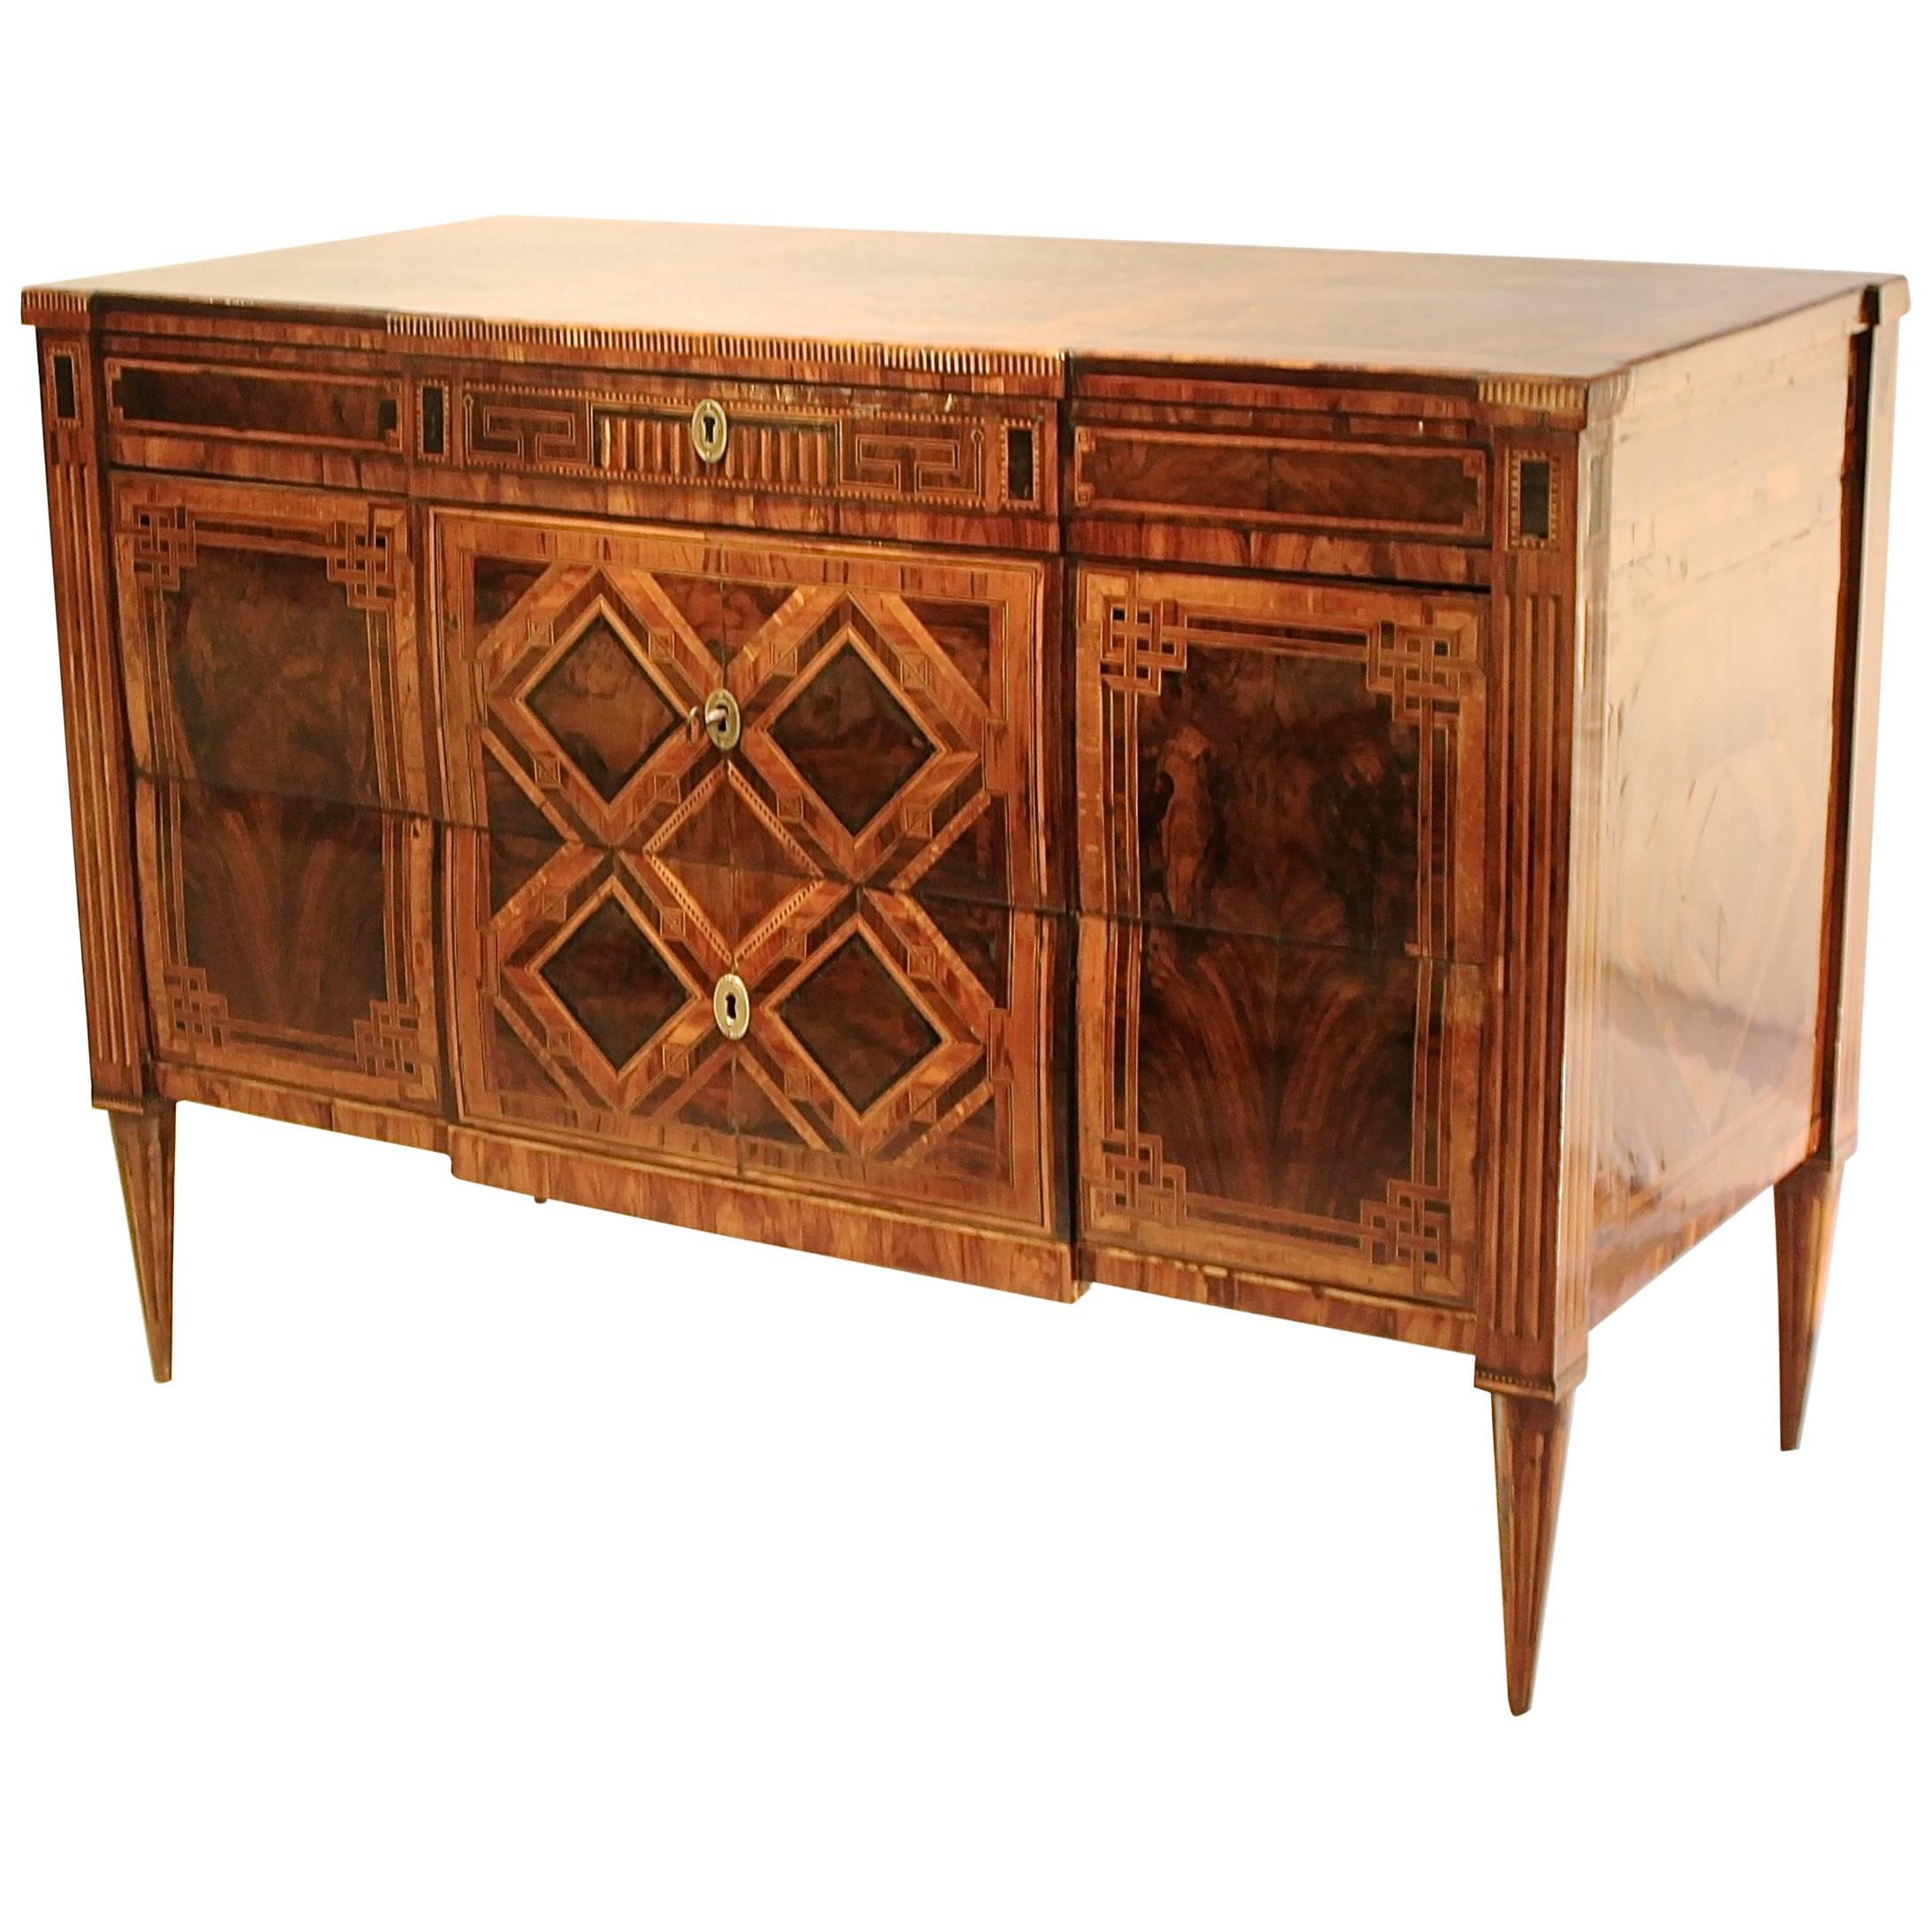 Lovely 18th Century Louis XVI Chest Of Drawers In Walnut Marquetry, Naples, Italy